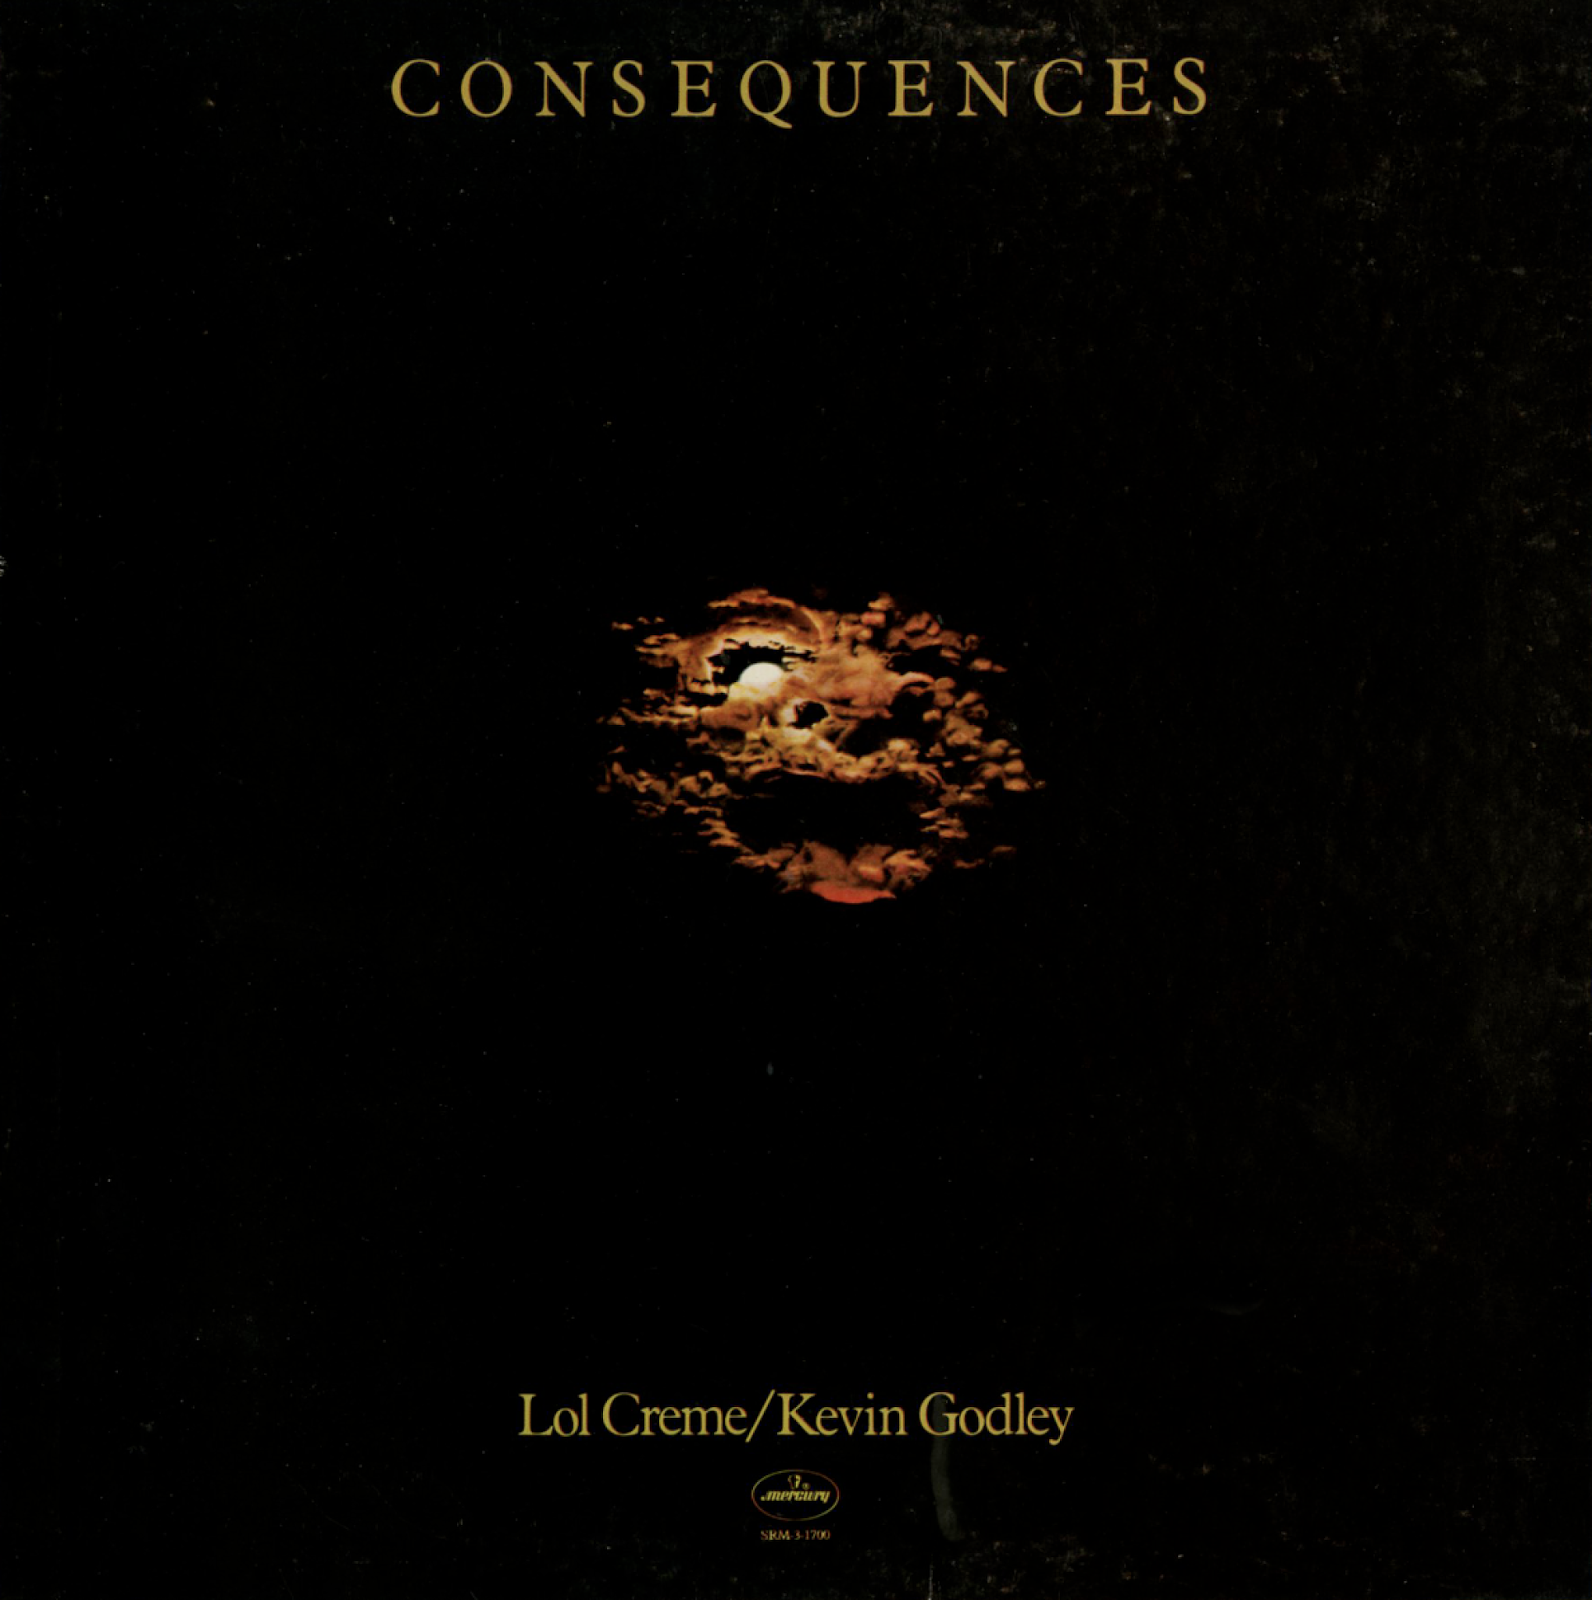 Lol Creme Kevin Godley Consequences